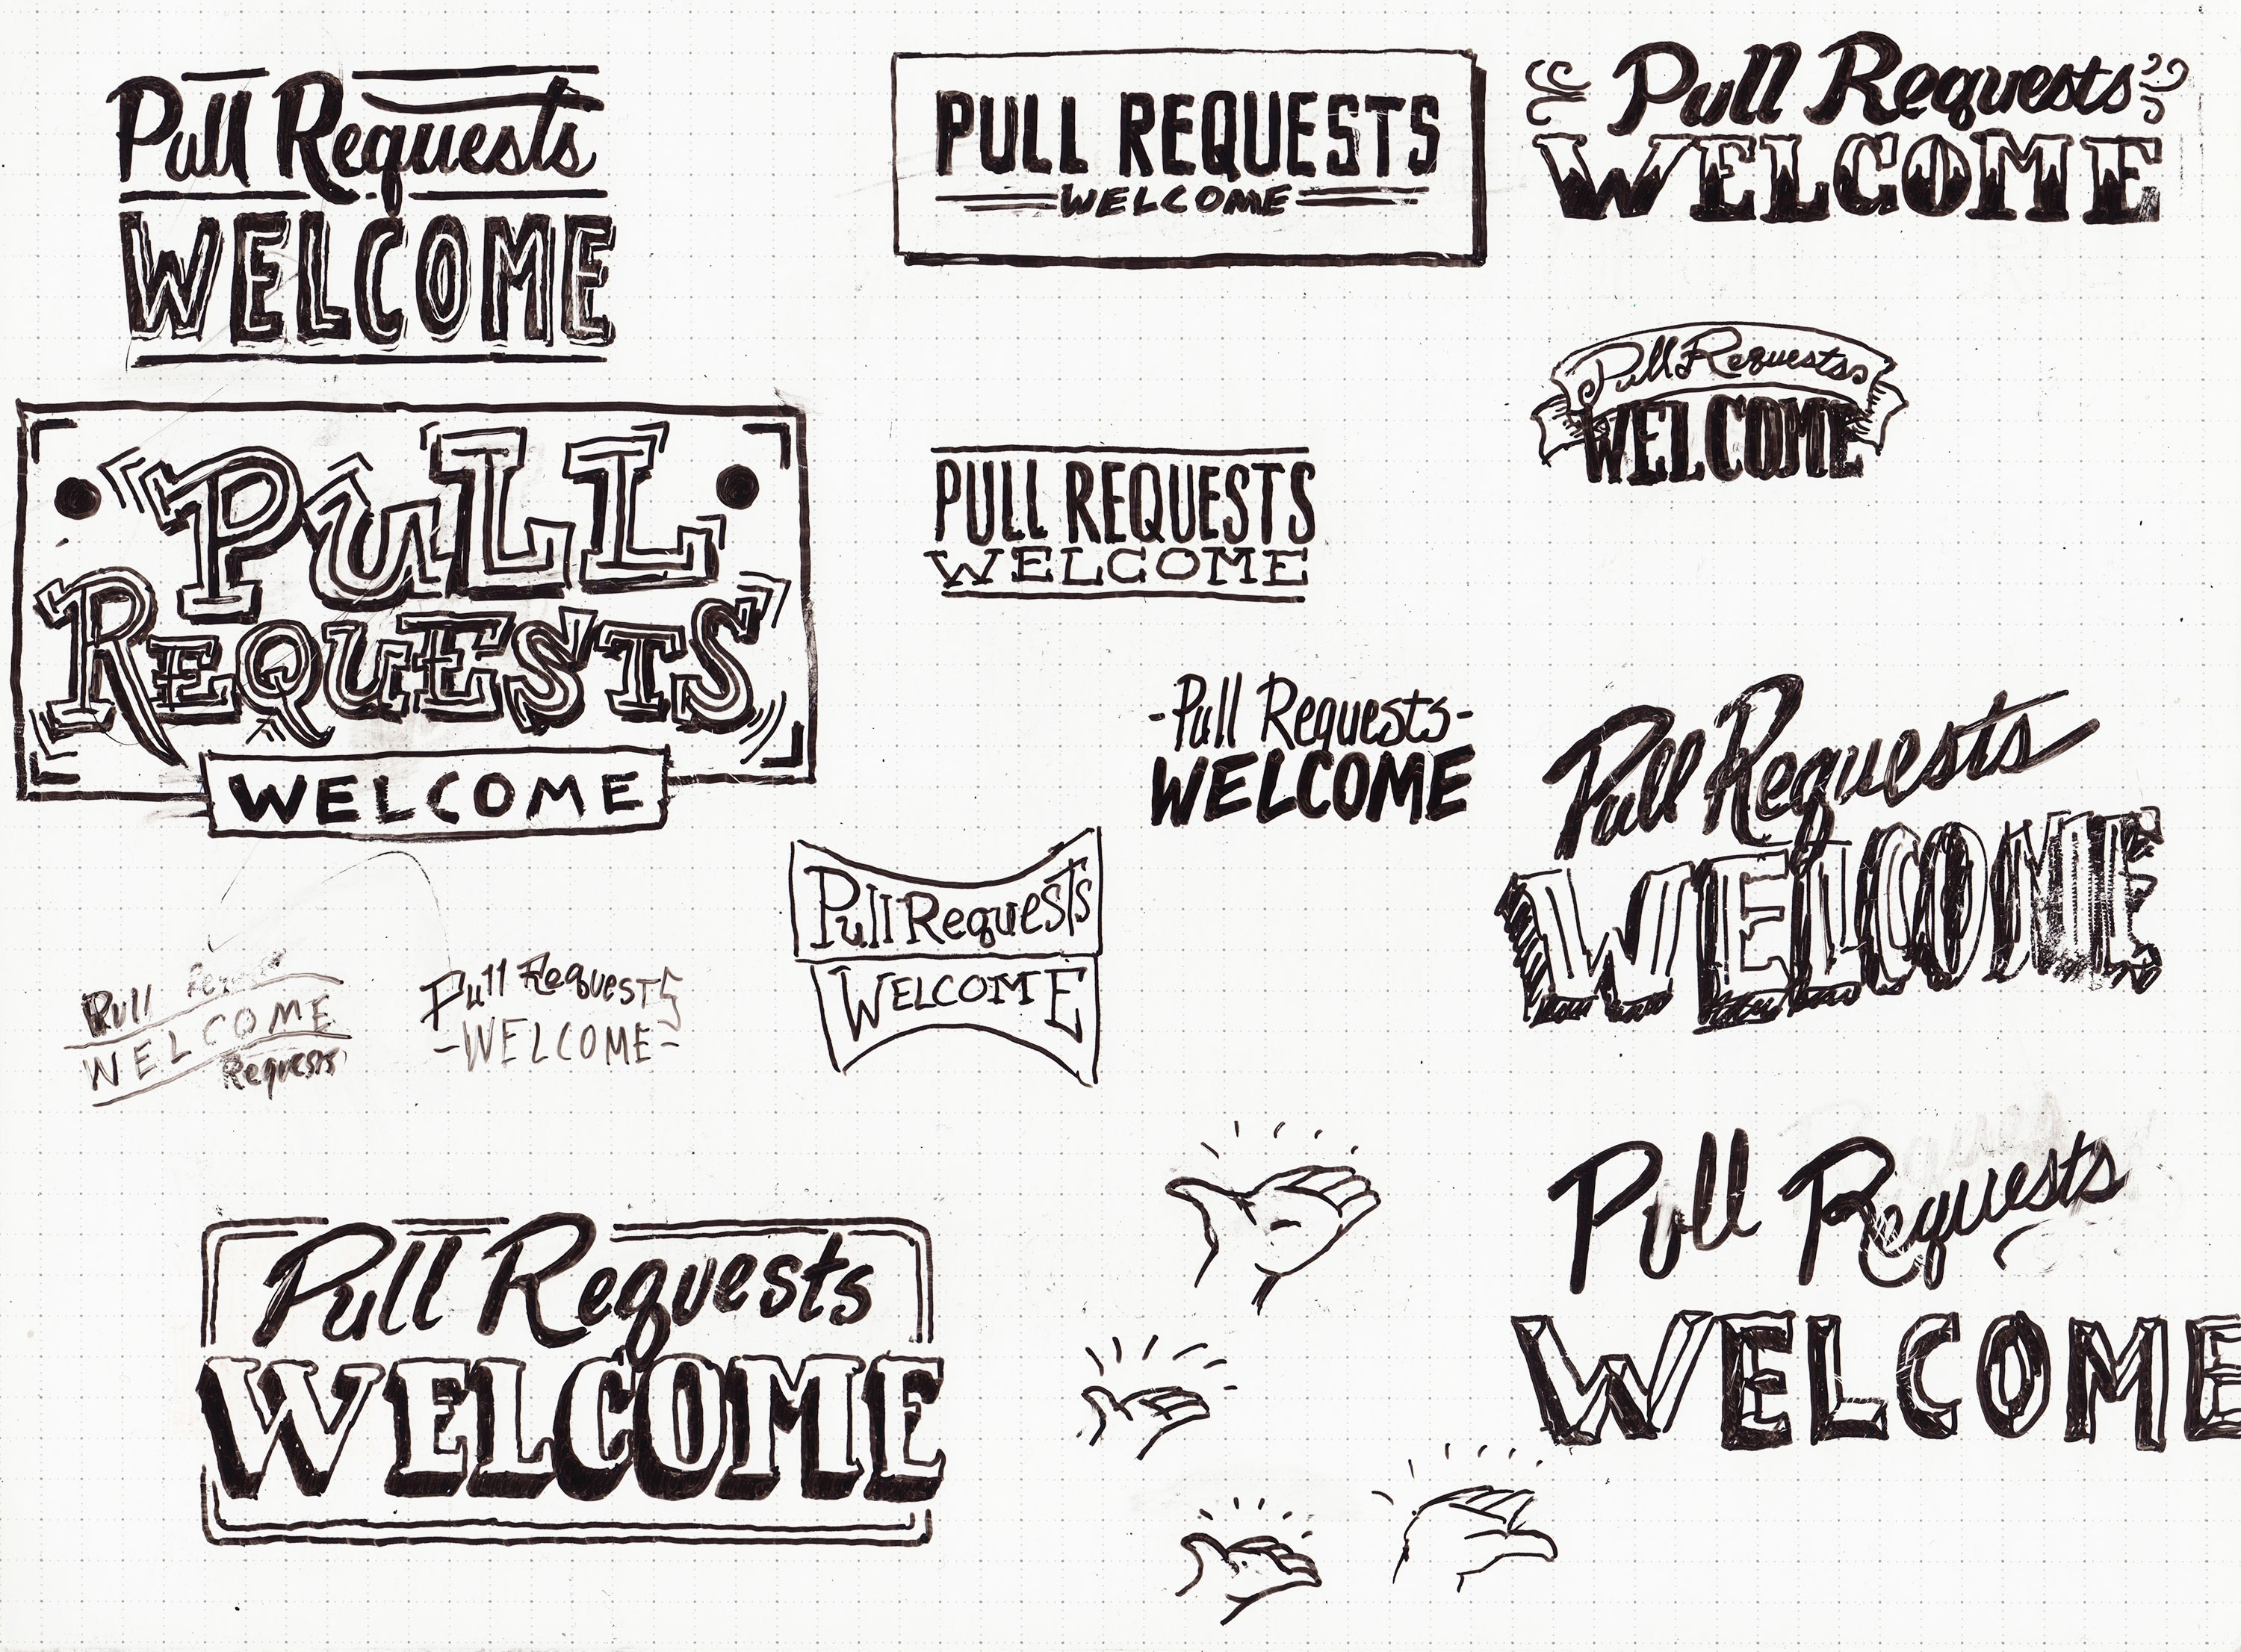 Pr welcome sketches